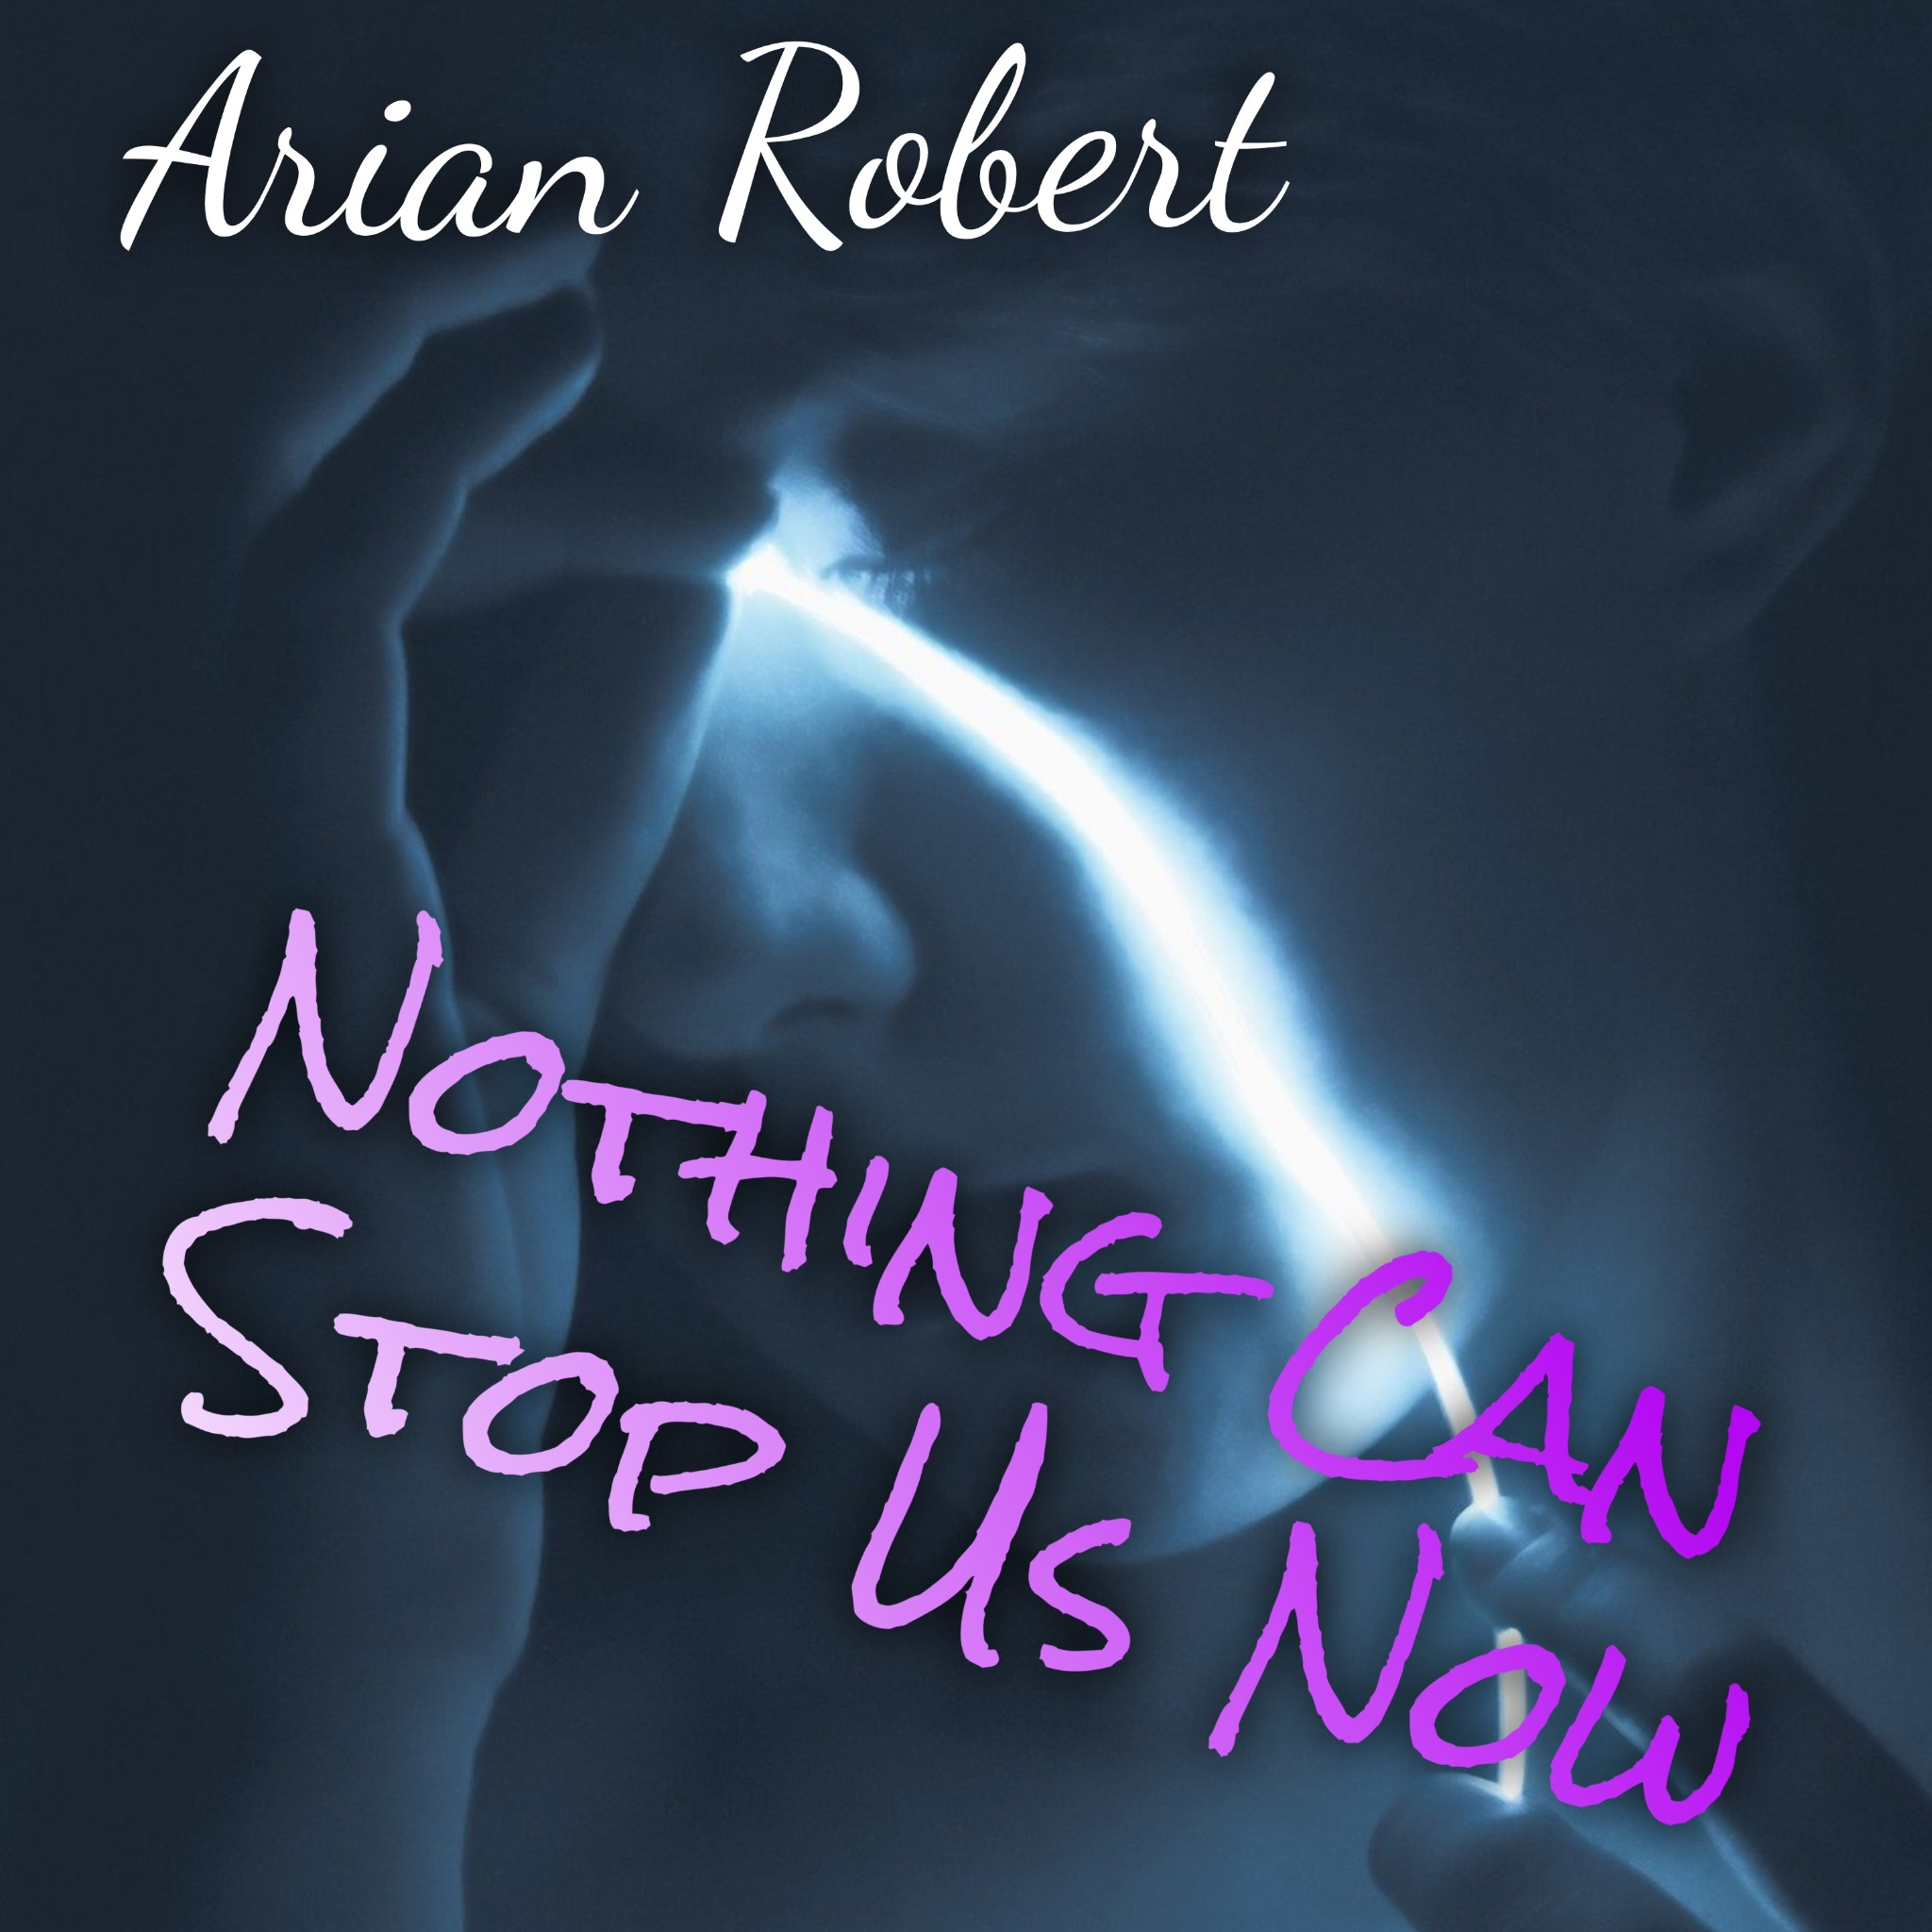 Nothing Can Stop Us Now performed by Arian Robert